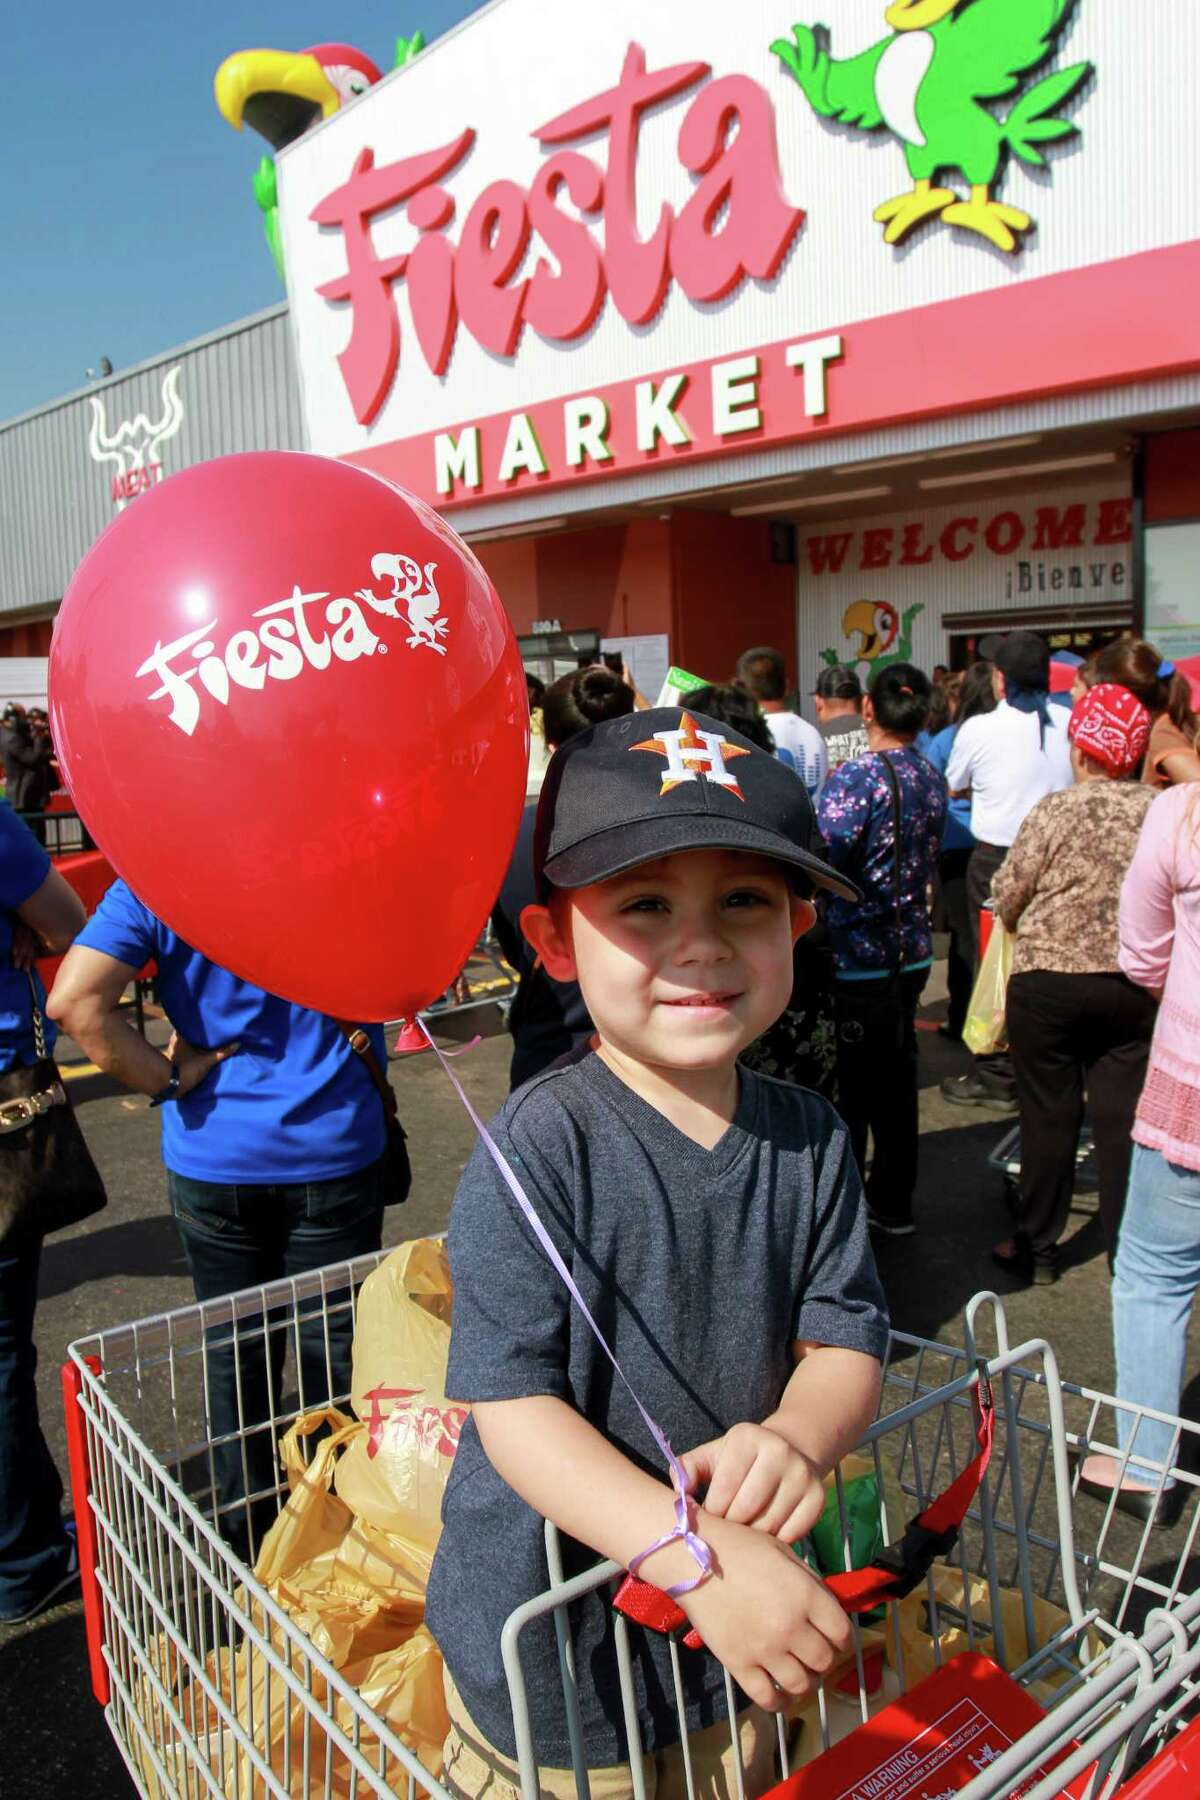 Three-year-old Mikey Gonzales at the grand re-opening of the Fiesta on Wayside Drive. Fiesta has invested in the store, redesigning and updating its appearance and layout, the first of several planned upgrades at the chain's stores. Mikey was with his mother, Letty Gonzales. (For the Chronicle/Gary Fountain, August 31, 2016)